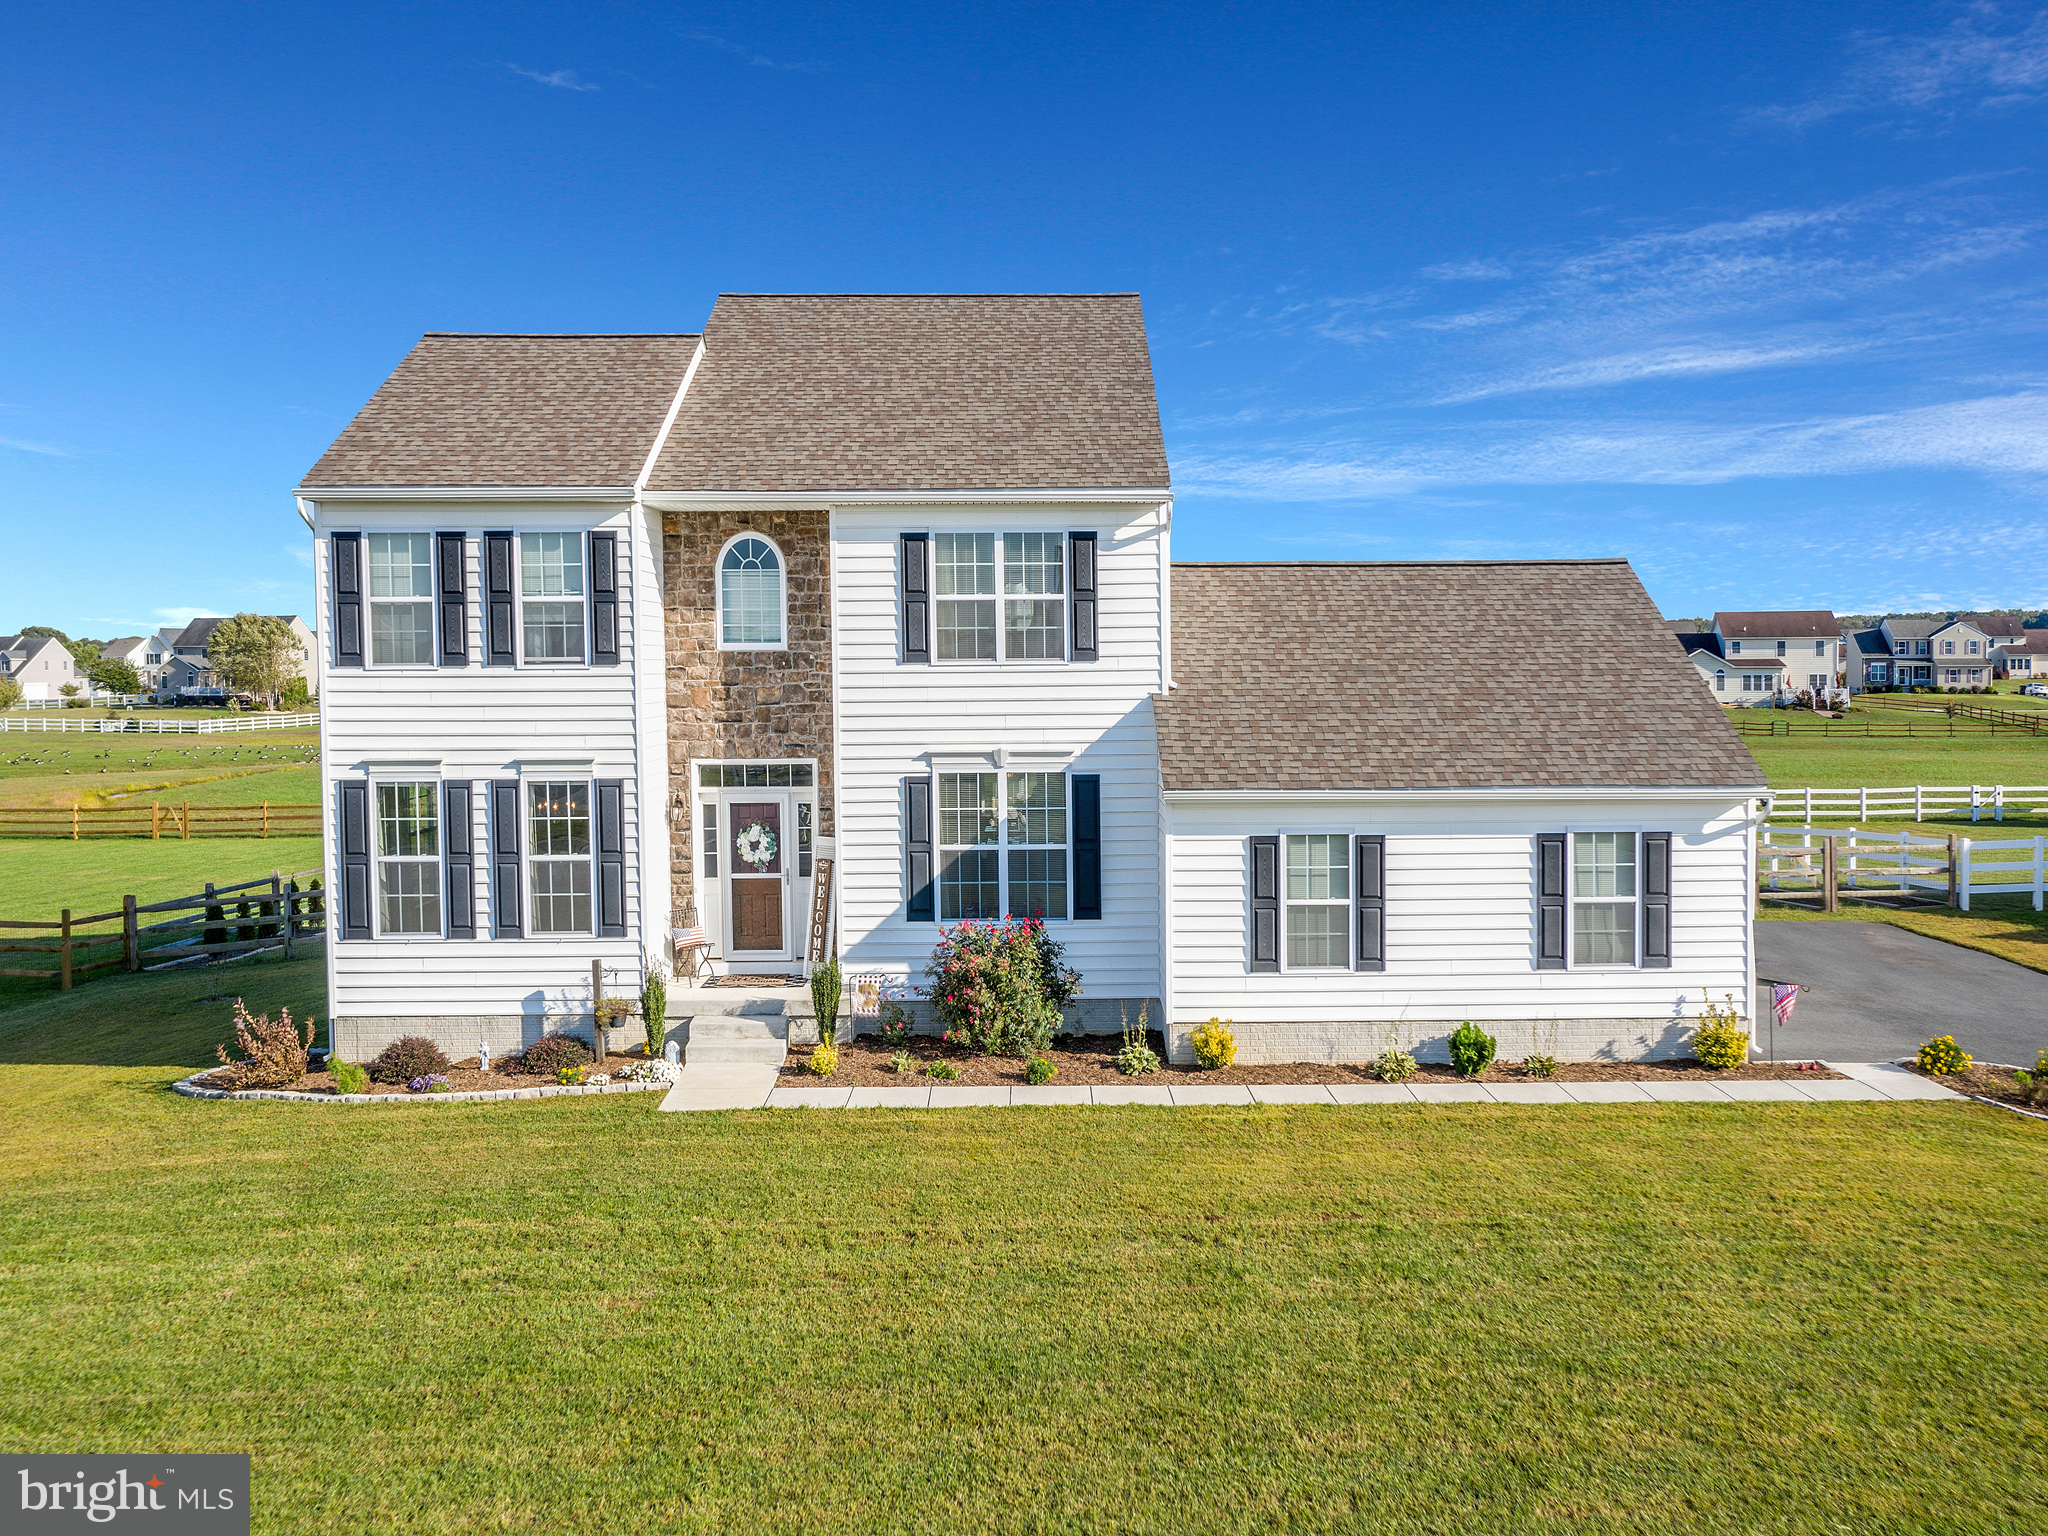 Visit this home virtually: http://www.vht.com/434110571/IDXS - Welcome to 385 Jockey Hollow Drive!!   This captivating home welcomes you with 2,662 SqFt of care-free living space. This home sits on a premium location that offers nothing but peaceful common ground behind your .66-acre lot. The backyard includes a large deck and fire-pit, perfect for entertaining. This well-maintained home features 4 bedrooms and 2 1/2 baths, with a spacious open floor plan and bright natural sunlight.  The main level features beautiful vinyl hardwood throughout. The kitchen features granite countertops, stainless steel appliances, ample pantry and counter space, with a perfect view into the living room. The living room provides natural sunlight, a cathedral ceiling and a fireplace to cozy up next to.  The sunroom, also located off the kitchen, makes the perfect bonus room with endless possibilities.   Upstairs you will find 4 spacious bedrooms with carpet, updated ceiling fans and neutral paint. The primary bedroom includes its own bathroom, walk-in closet and gorgeous accent wall. You will also find the laundry in the upstairs hallway.   The extended 3-car garage is just another great addition to this home, giving you more room for parking, storage, etc.  This home is also located in a USDA area which means you could get 100% financing!  Put this home on the top of your list. It will not last long!